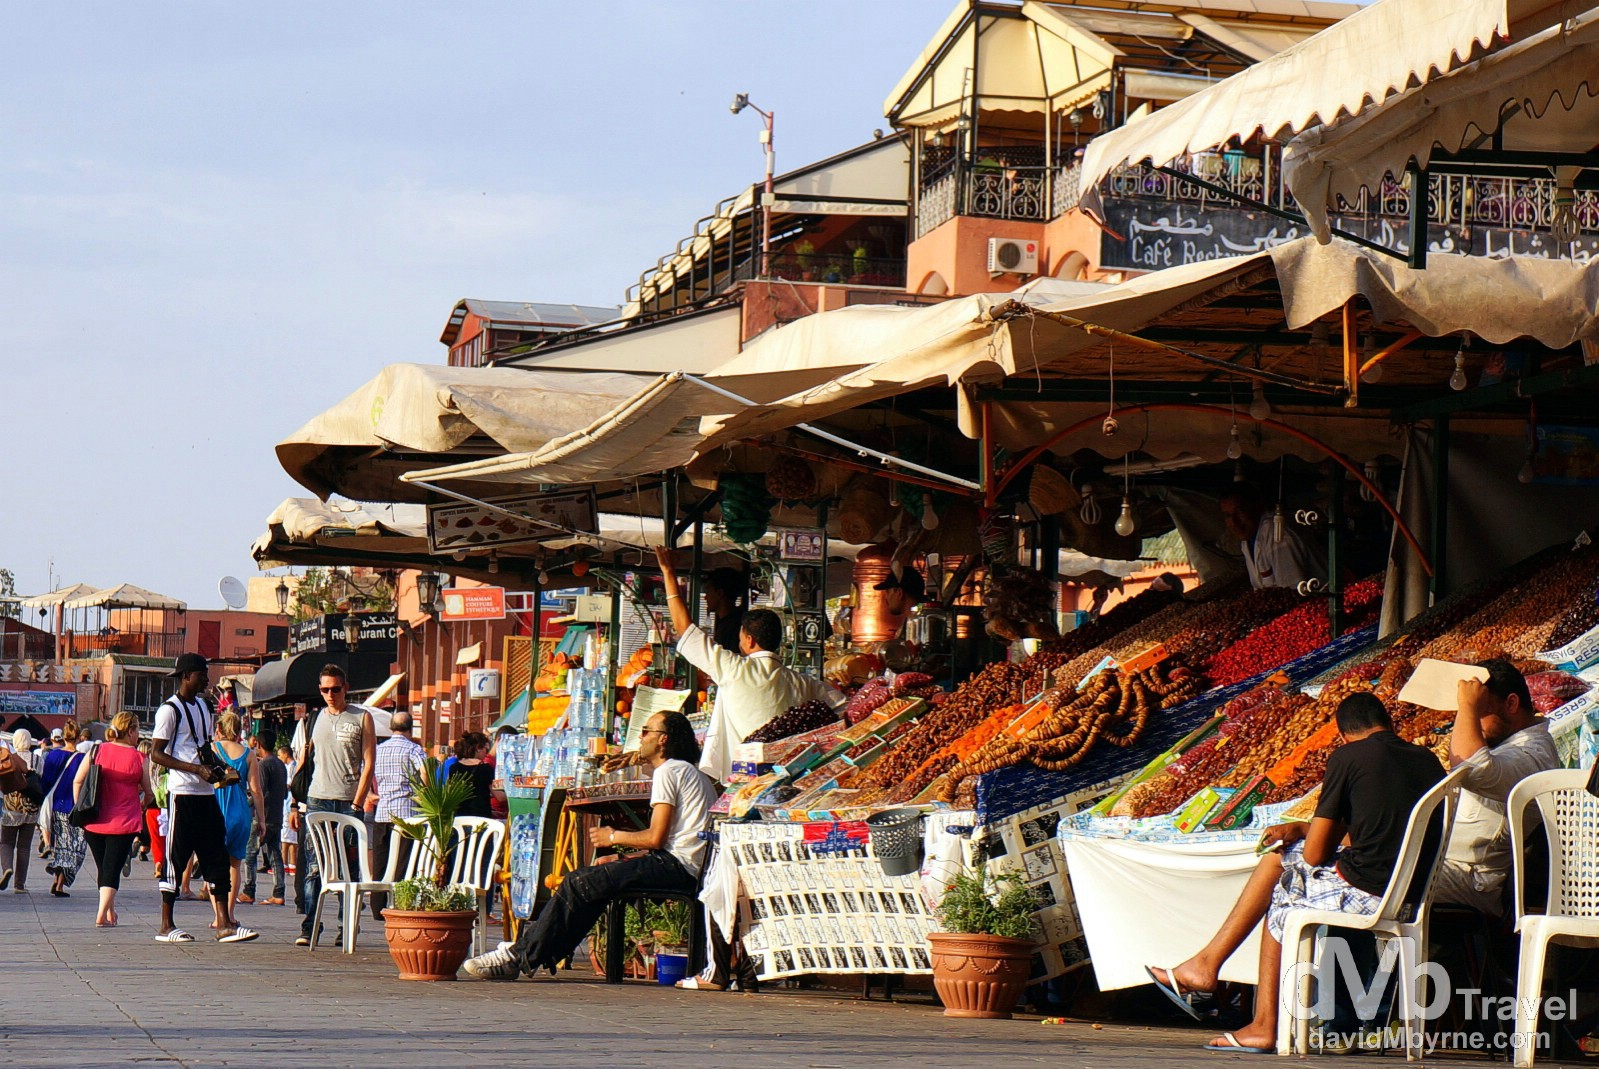 Stalls lining a portion of Djemma El-Fna in Marrakesh, Morocco. May 5th, 2014.